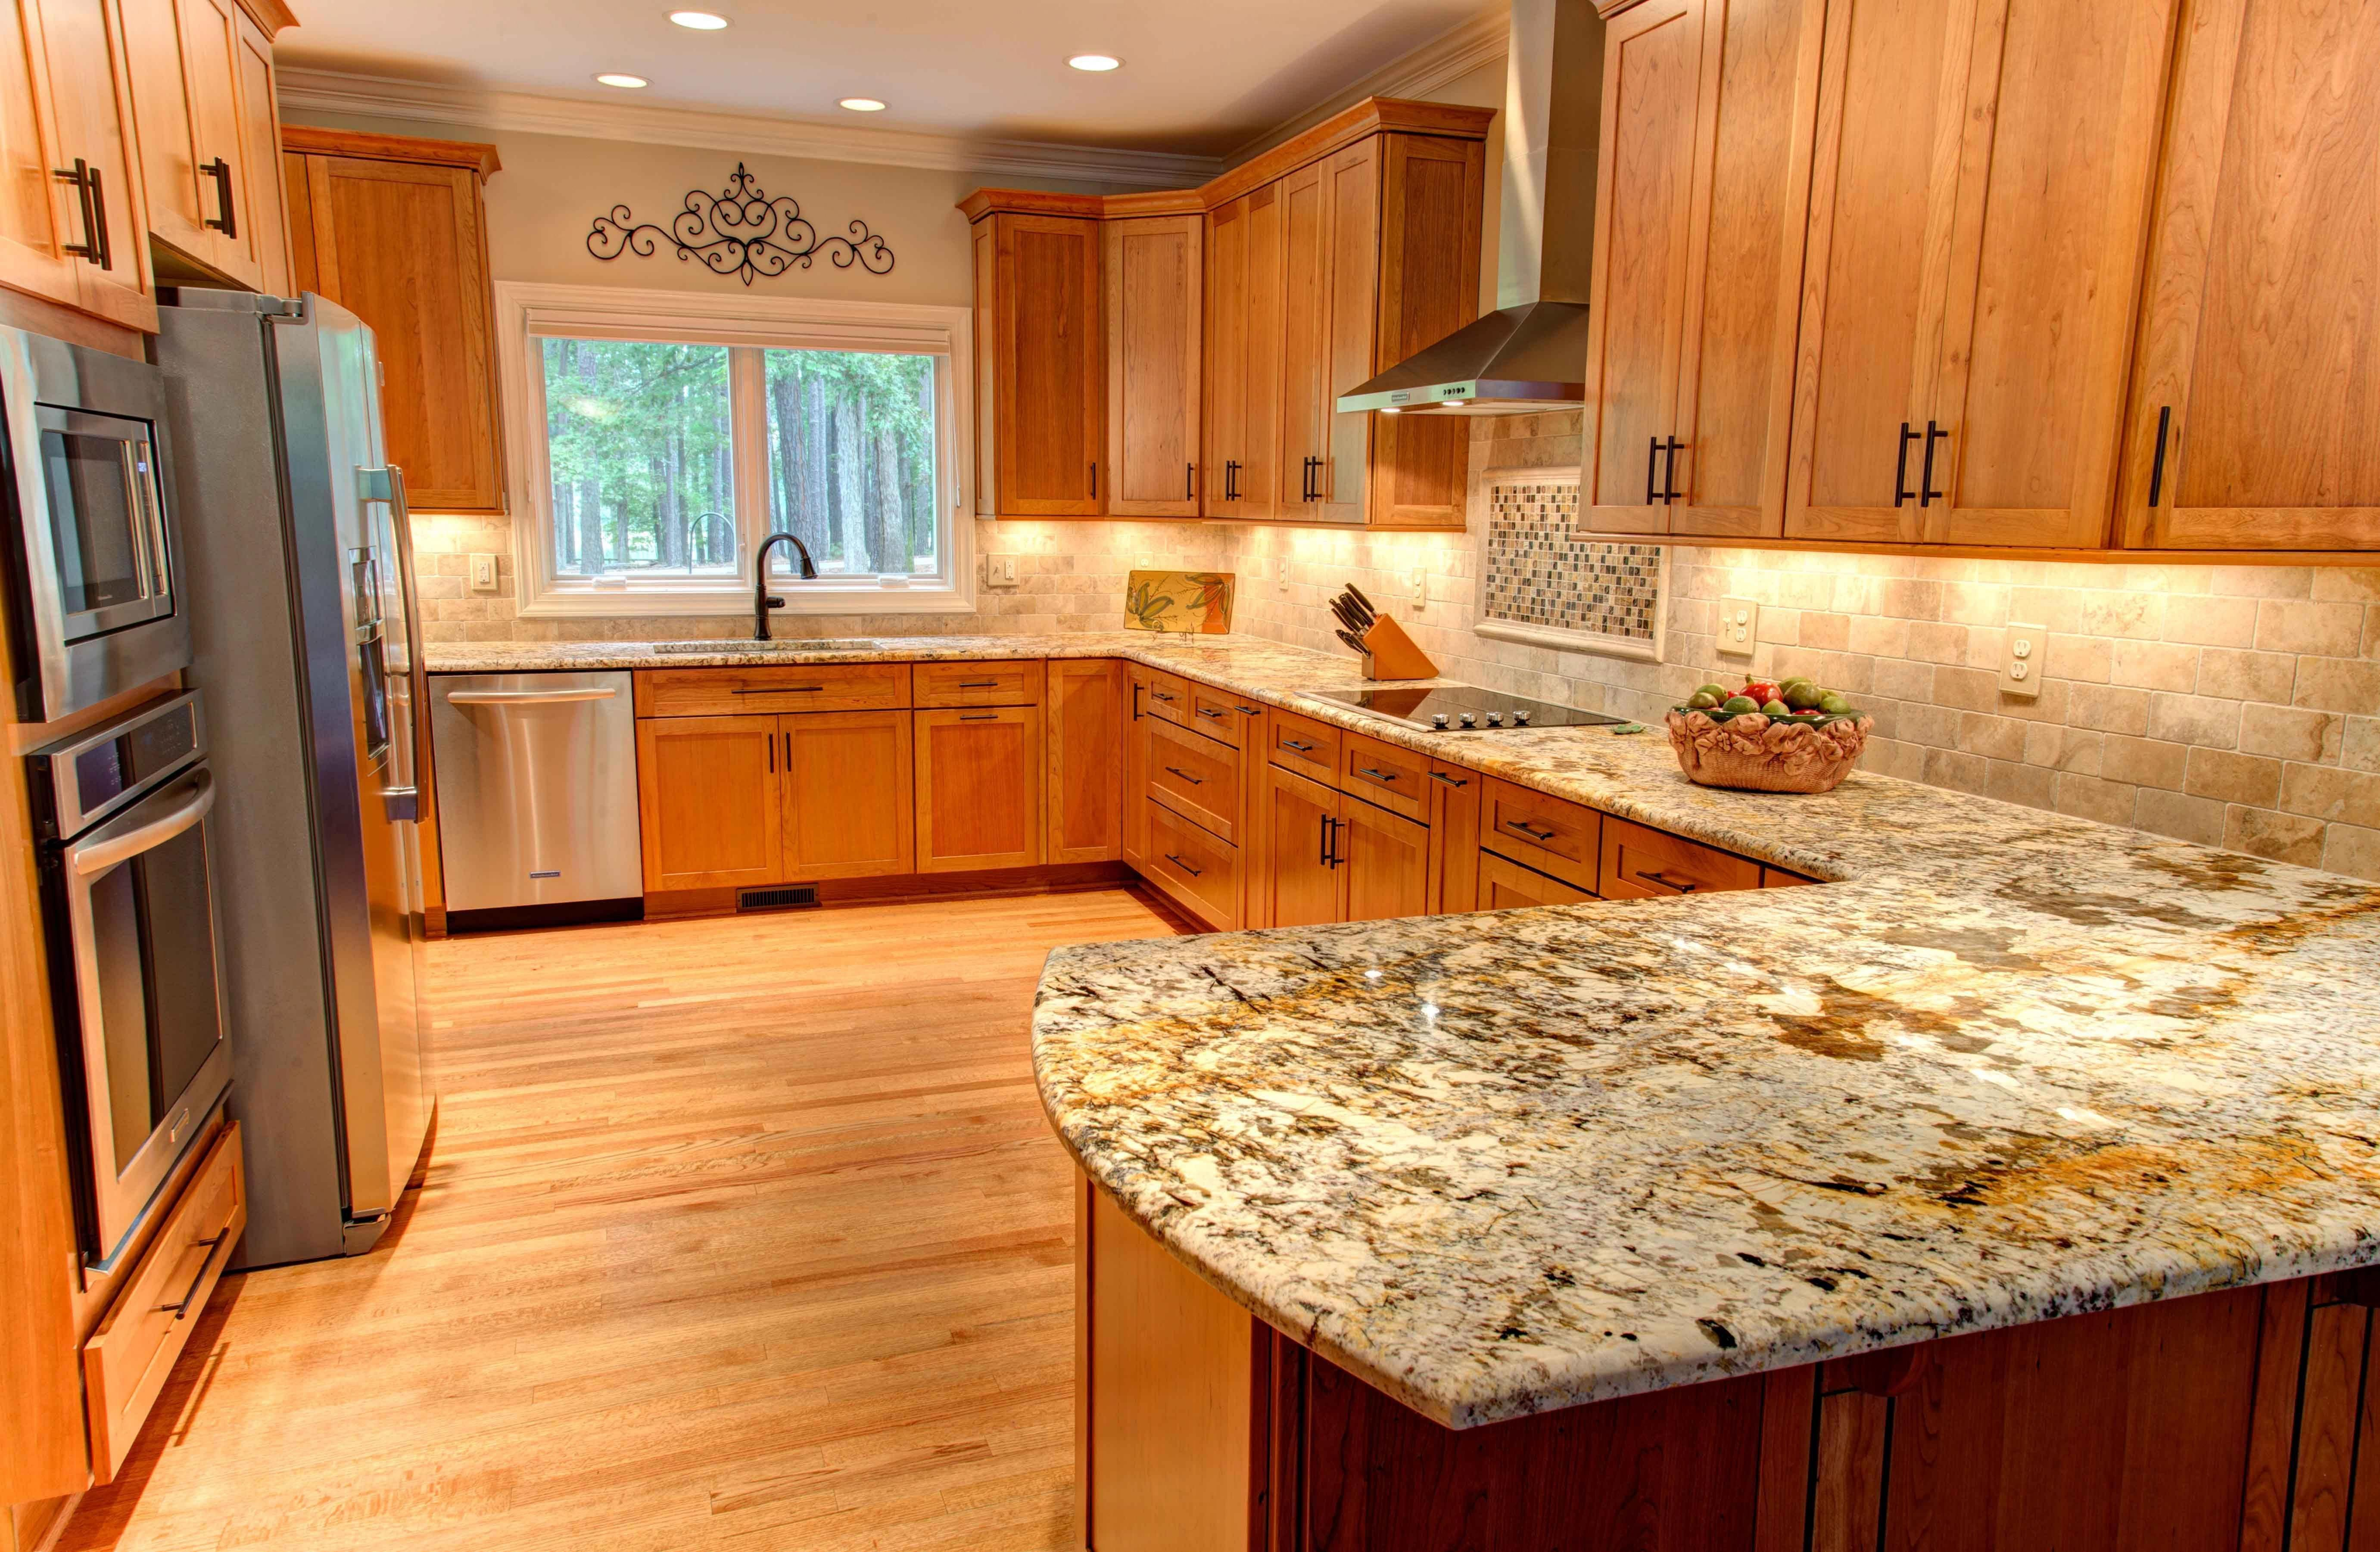 Choosing better quality countertops, floor covering and